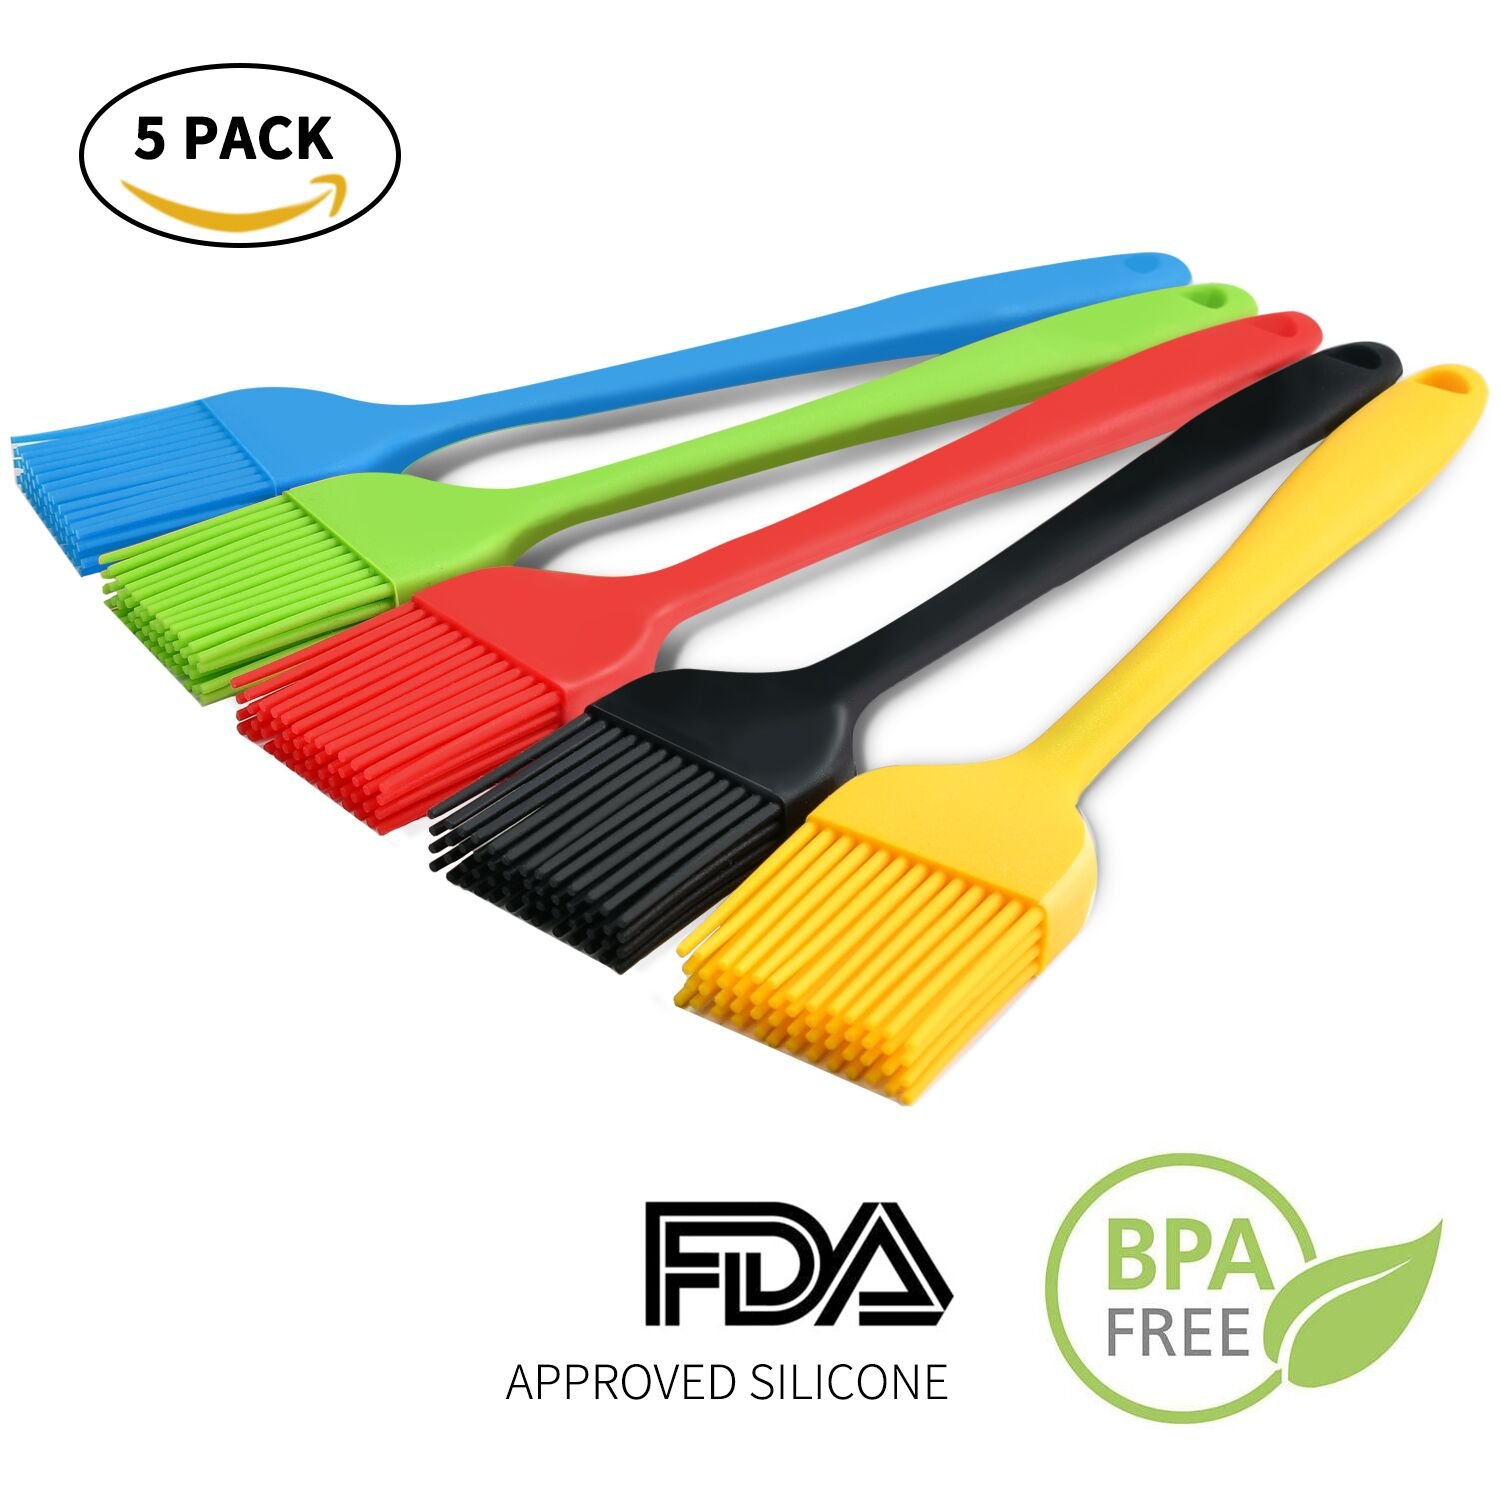 GUGULE Silicone Basting Brushes, Pastry Brushes Heat Resistant Silicone Basting Pastry Brushes, BBQ Brushes, Essential Cooking Gadget, 8.1 Inch Long, Set of 5